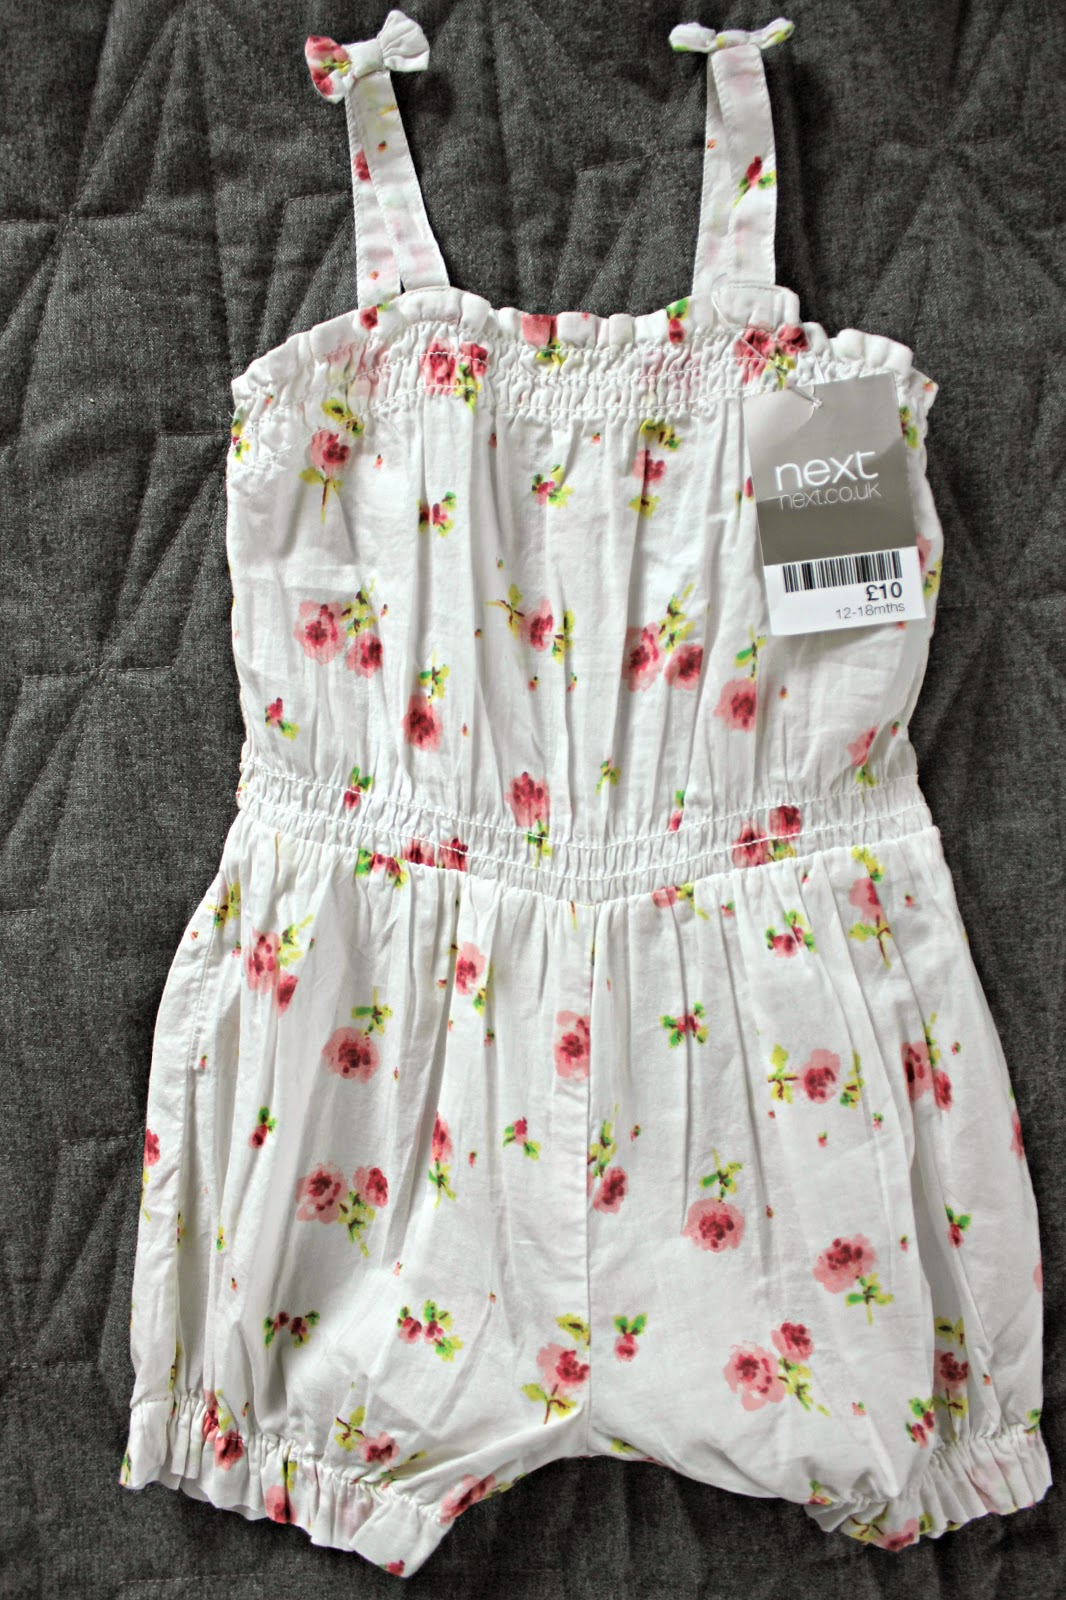 Next Ecru Rose Print Romper